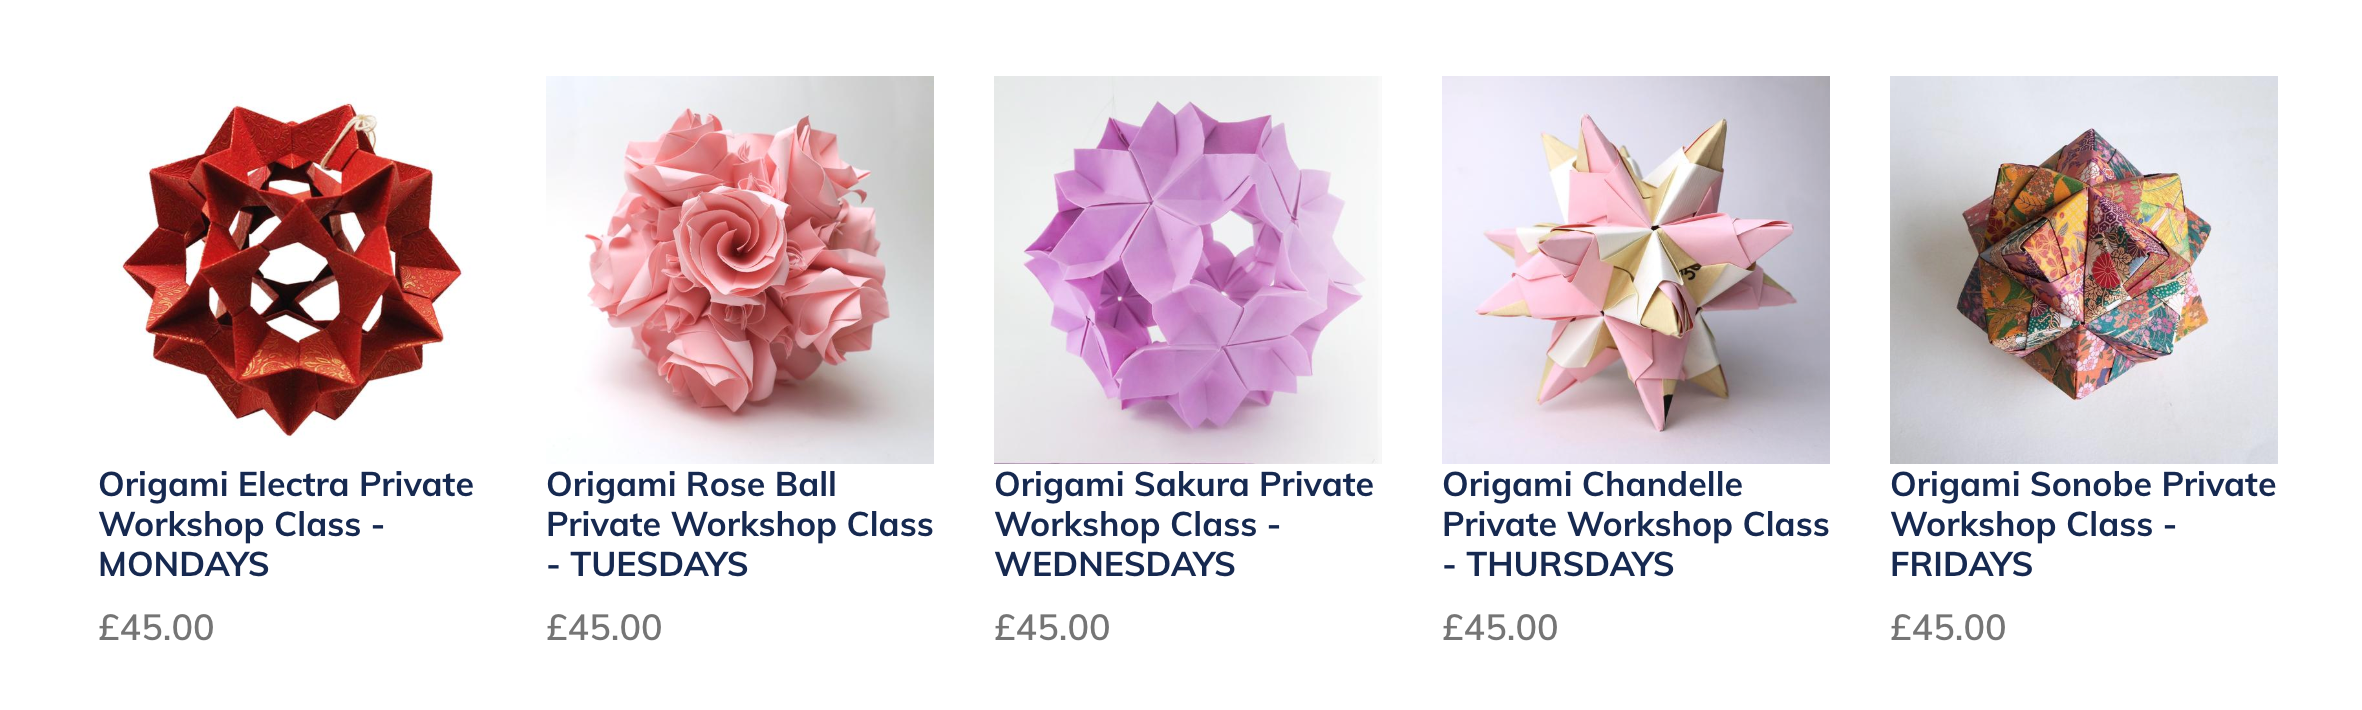 Origami Class Workshop in London